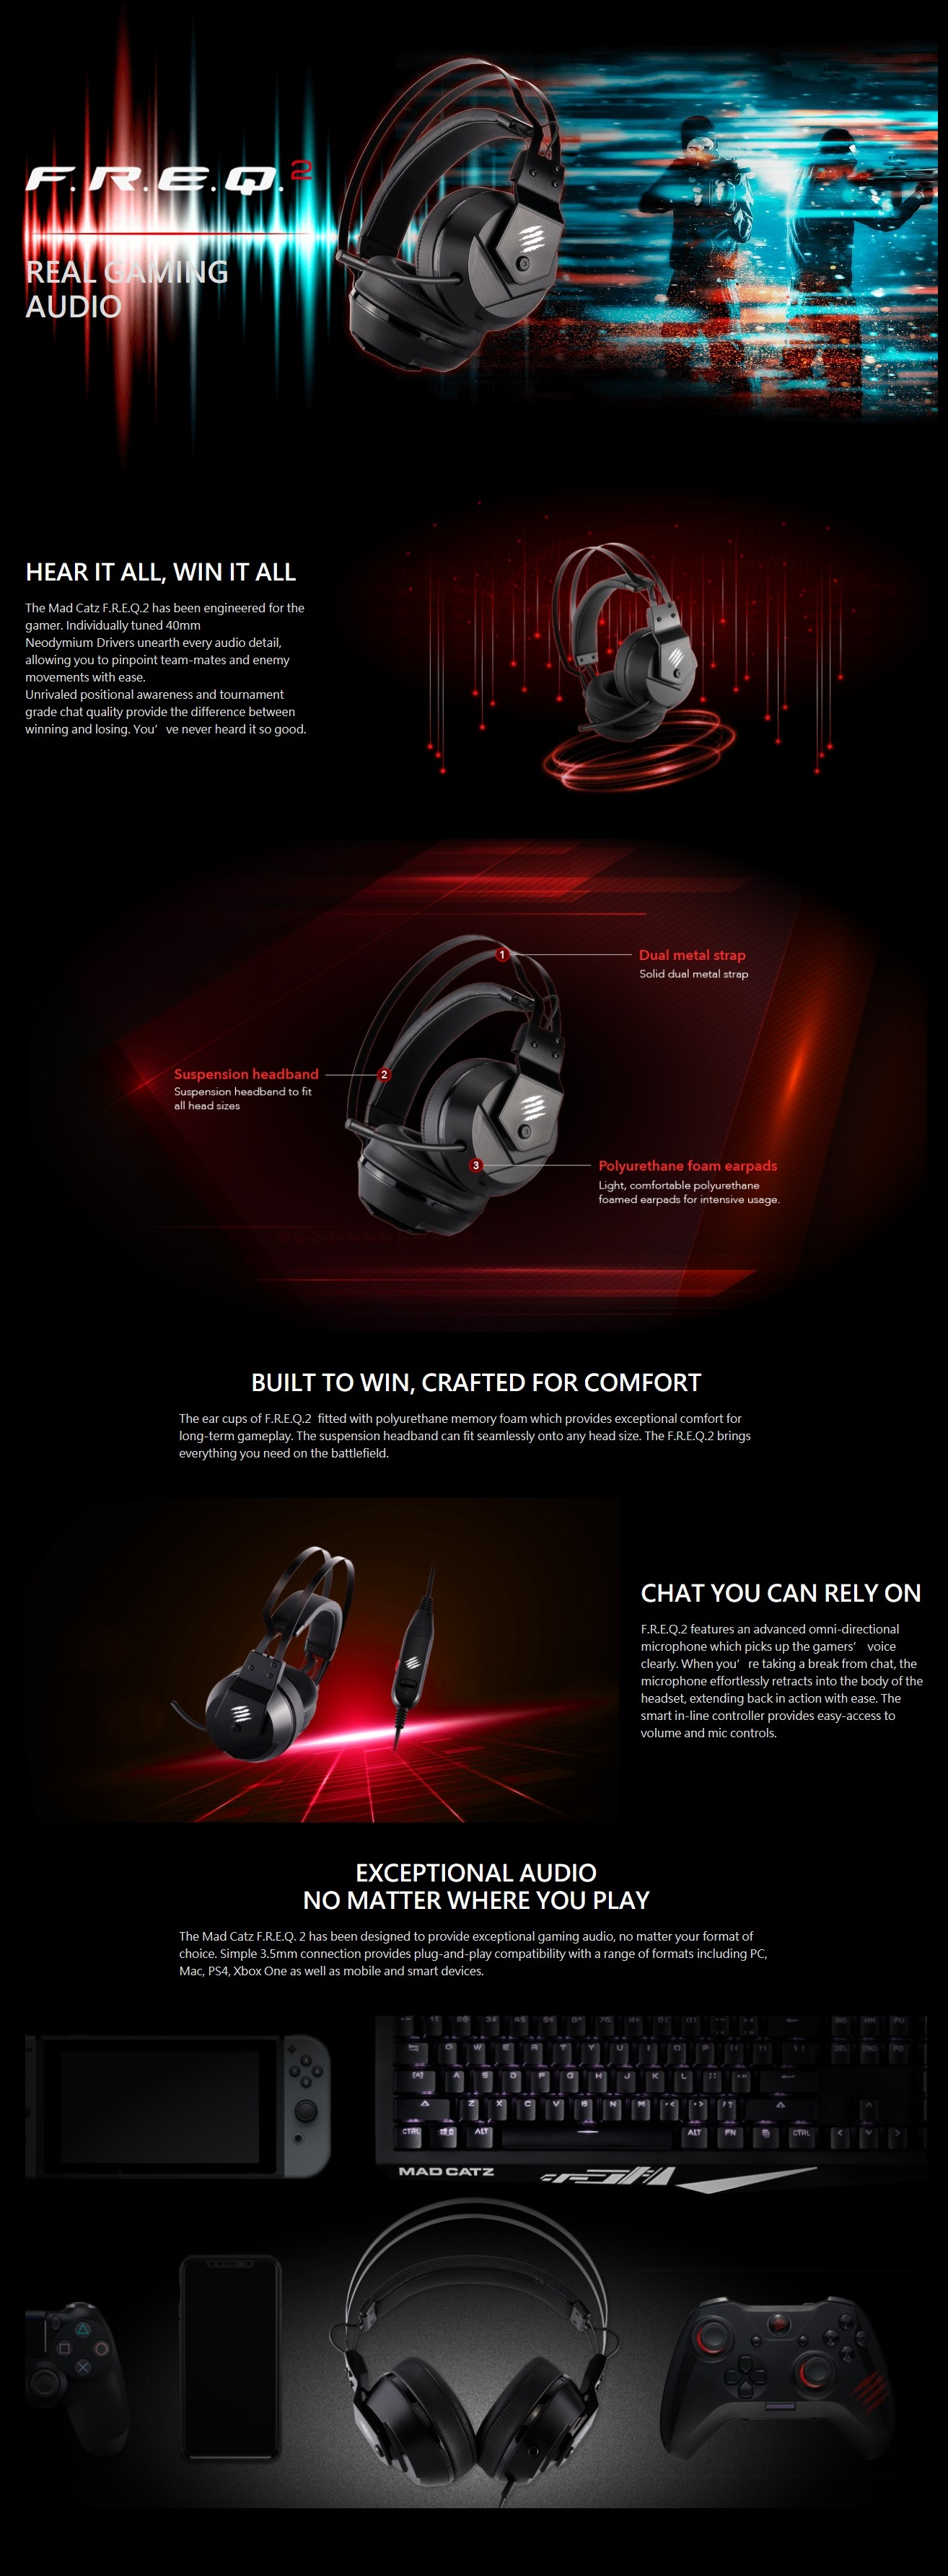 A large marketing image providing additional information about the product Mad Catz F.R.E.Q. 2 Gaming Headset Black - Additional alt info not provided